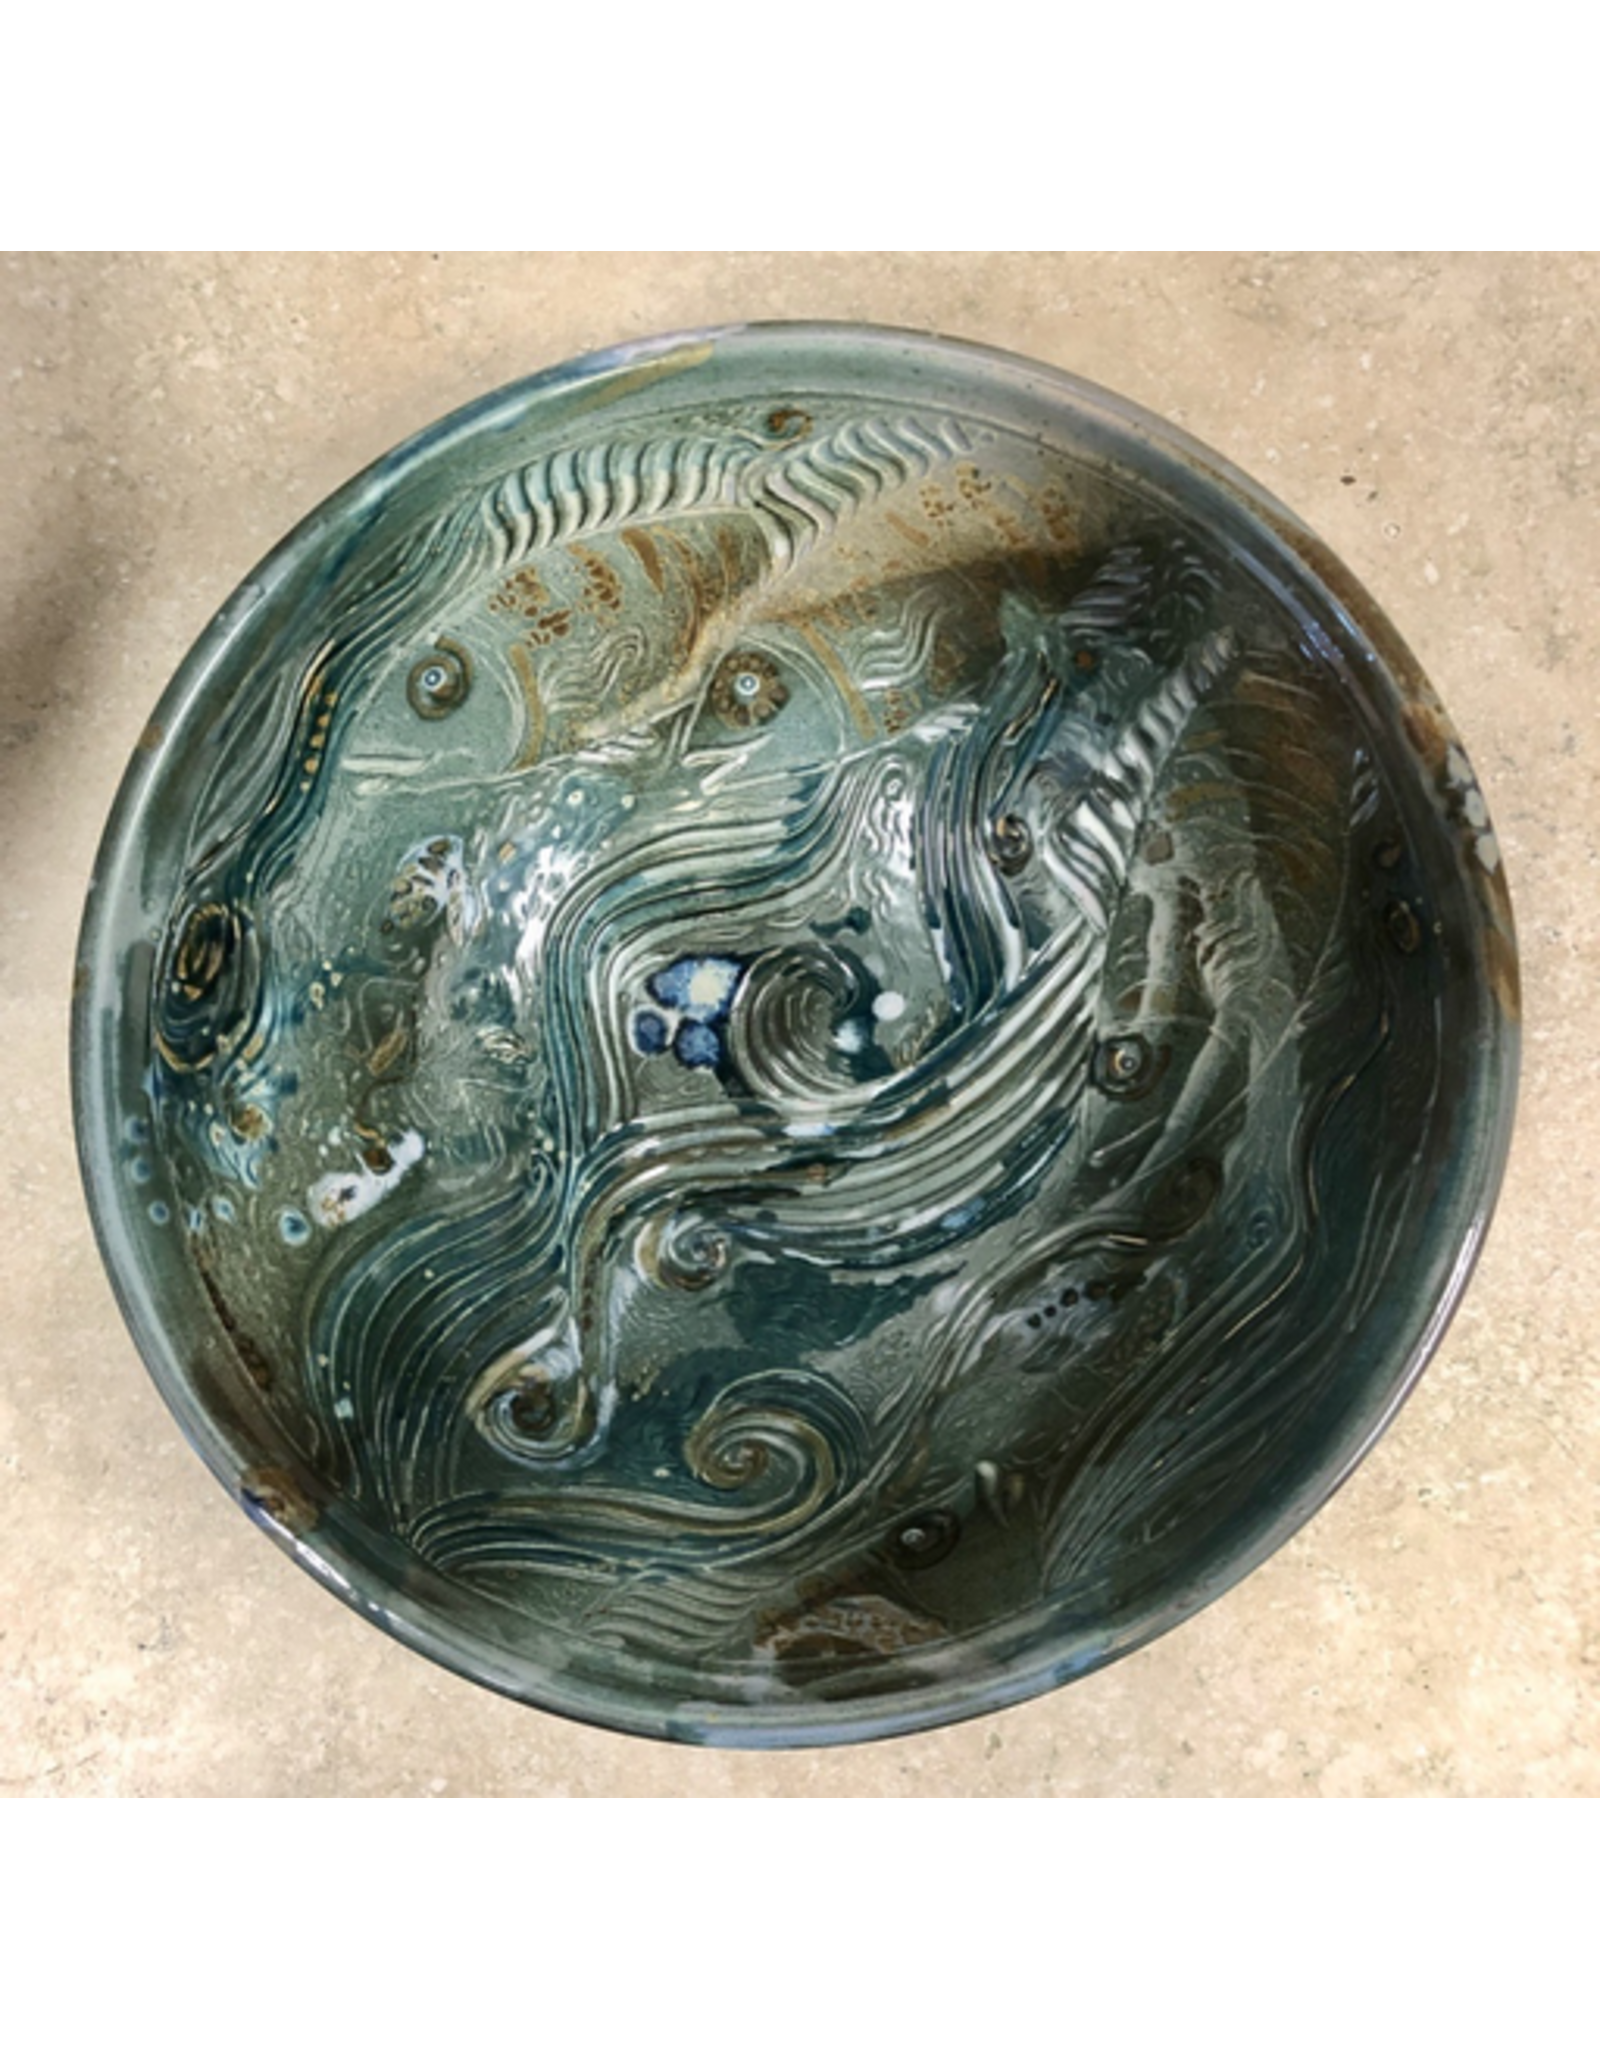 Gail Snively BOWL (Carved, Lg, #441, GAIS)